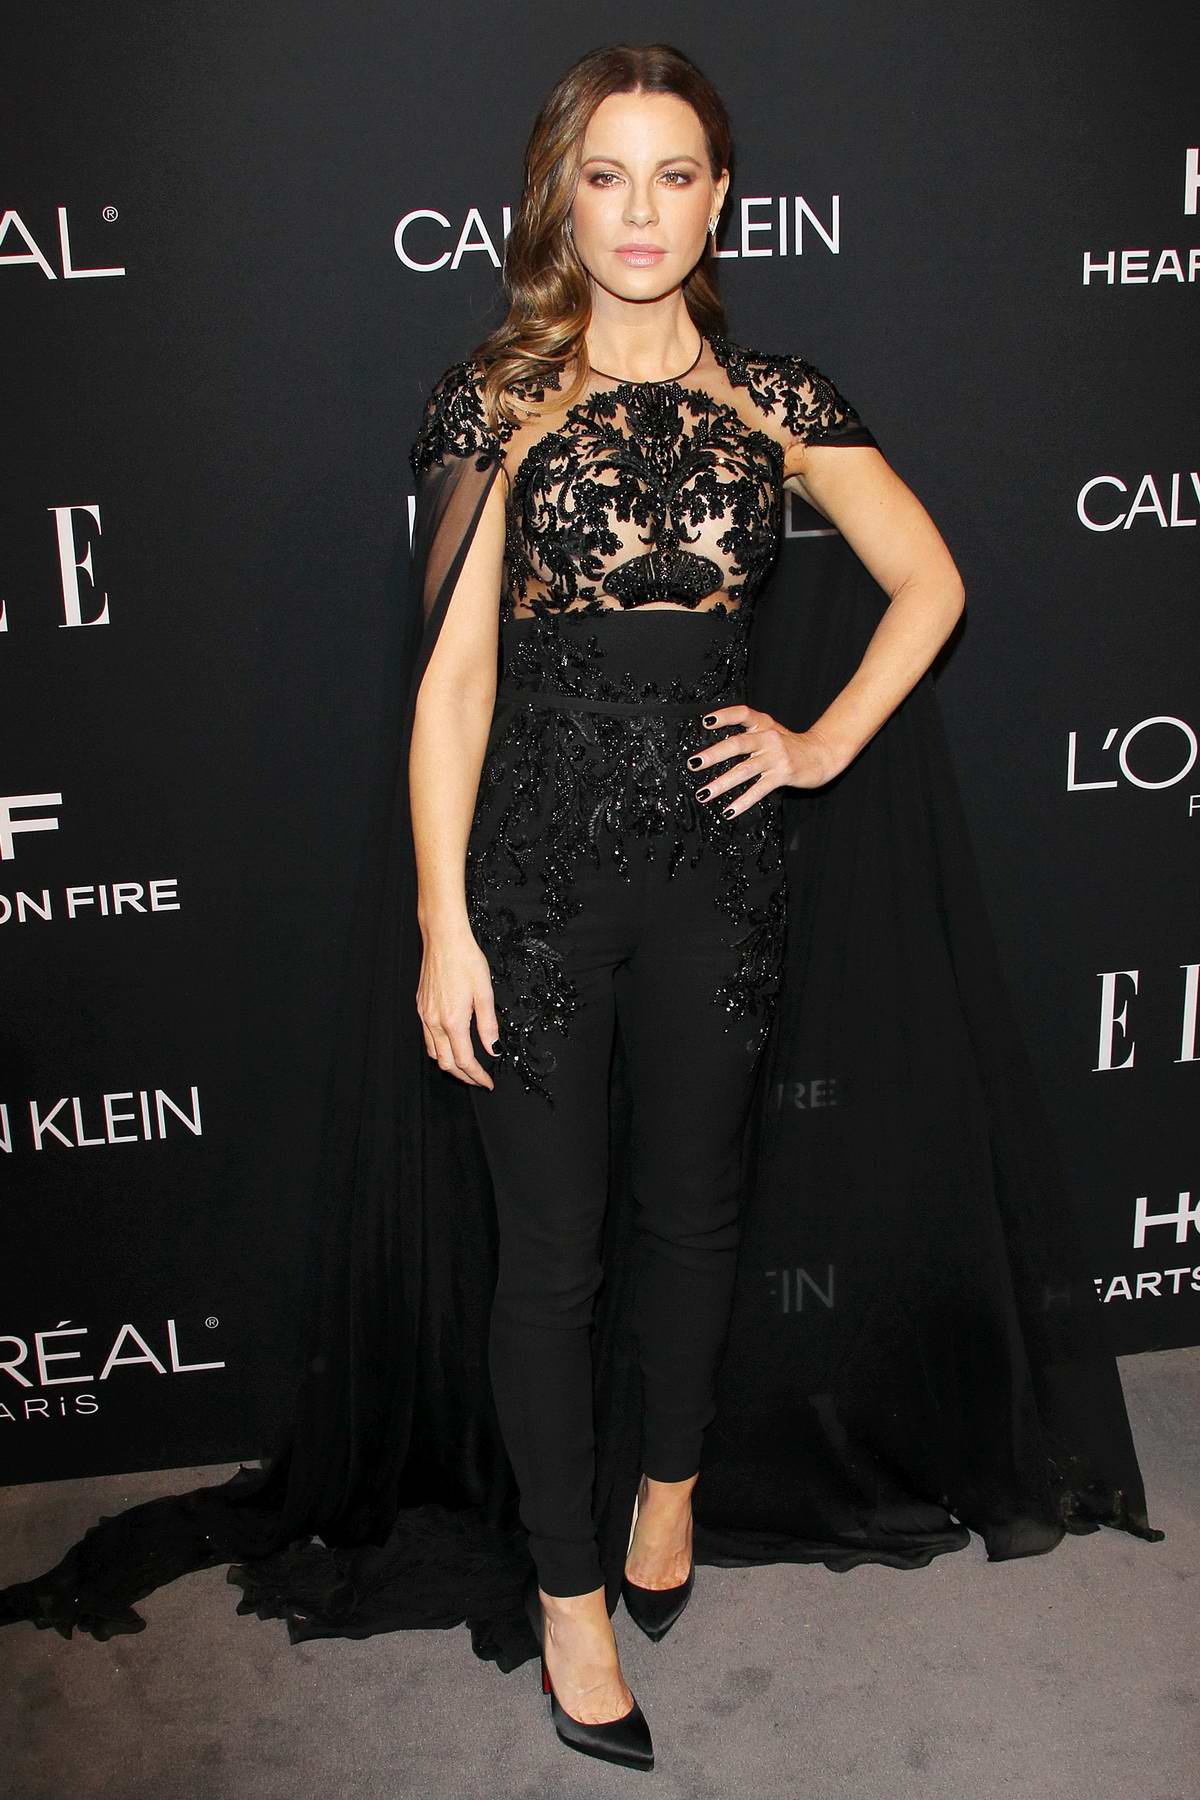 Kate Beckinsale attends ELLE's 25th Annual Women In Hollywood Celebration at the Four Seasons Hotel in Beverly Hills, Los Angeles